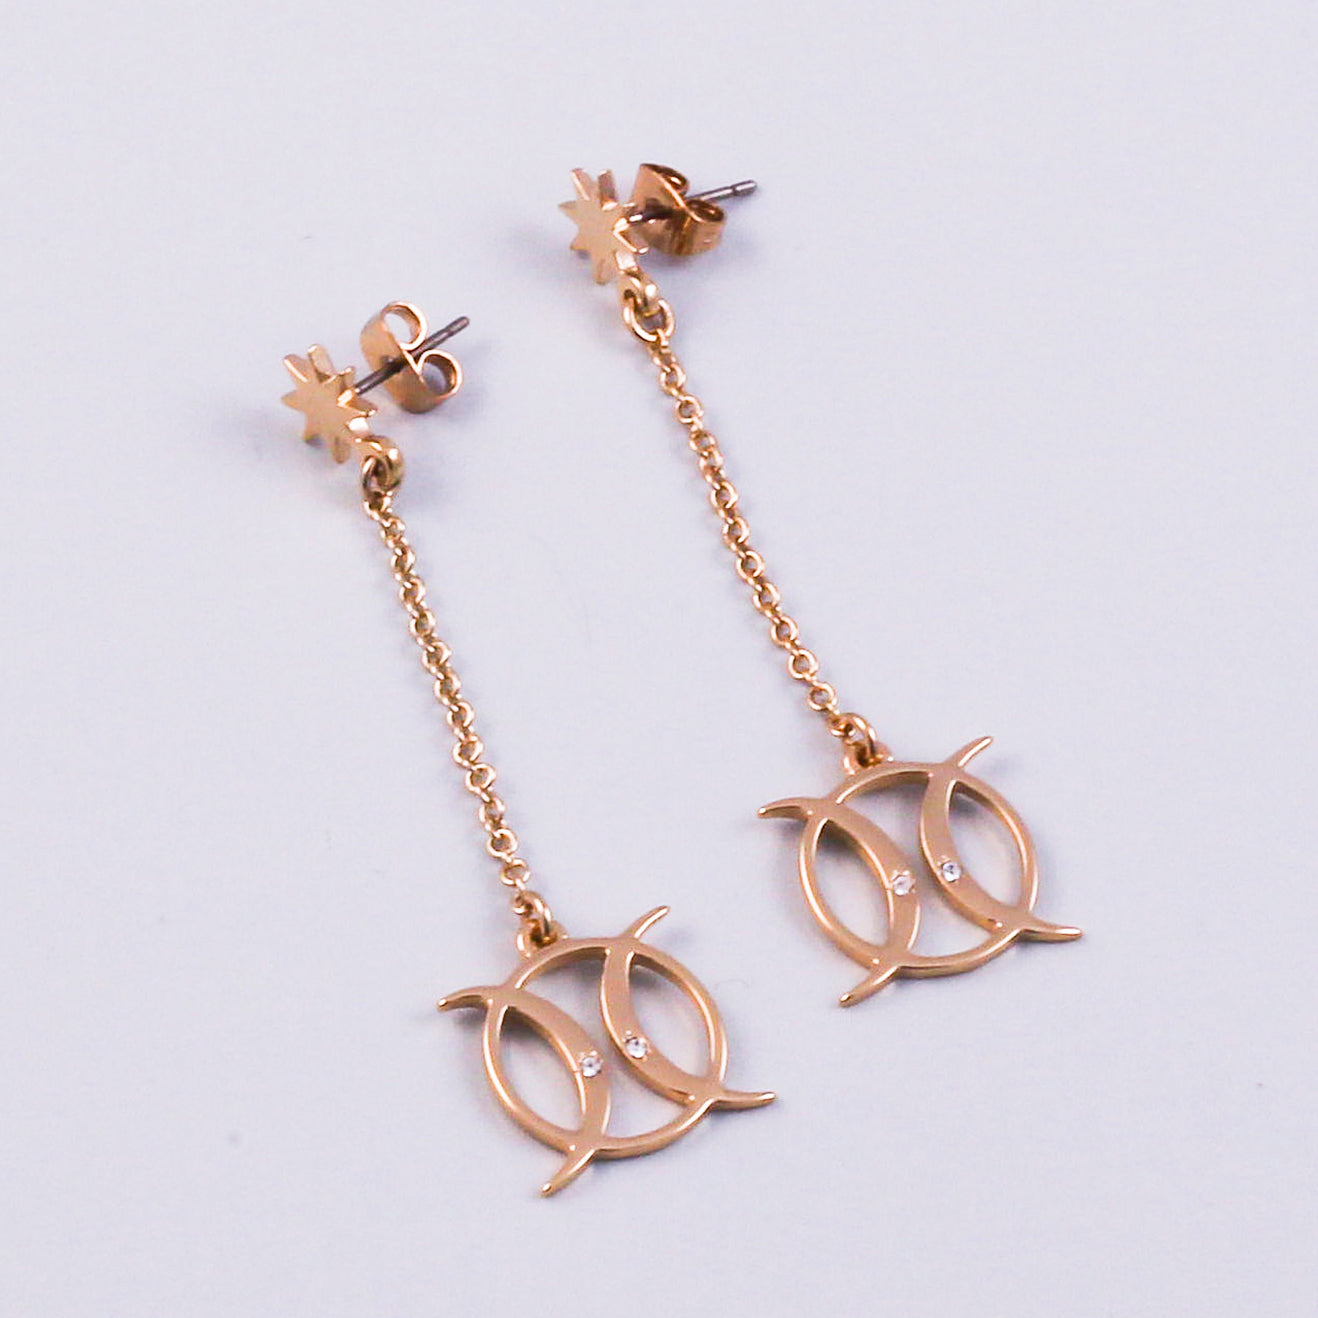 Symbol Earrings | Triple Moon Goddess | Gold